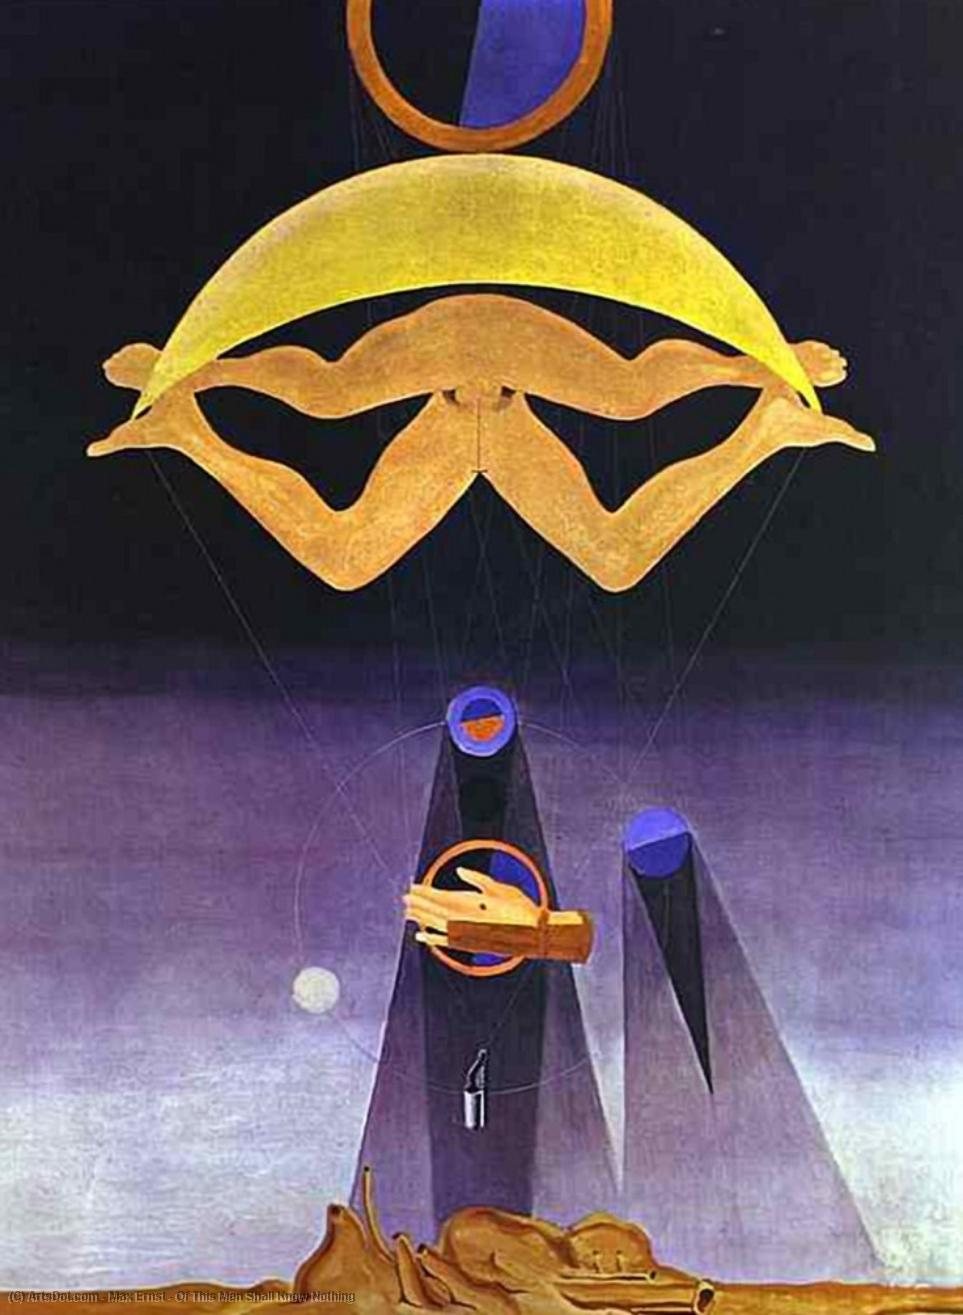 Of This Men Shall Know Nothing - Max Ernst